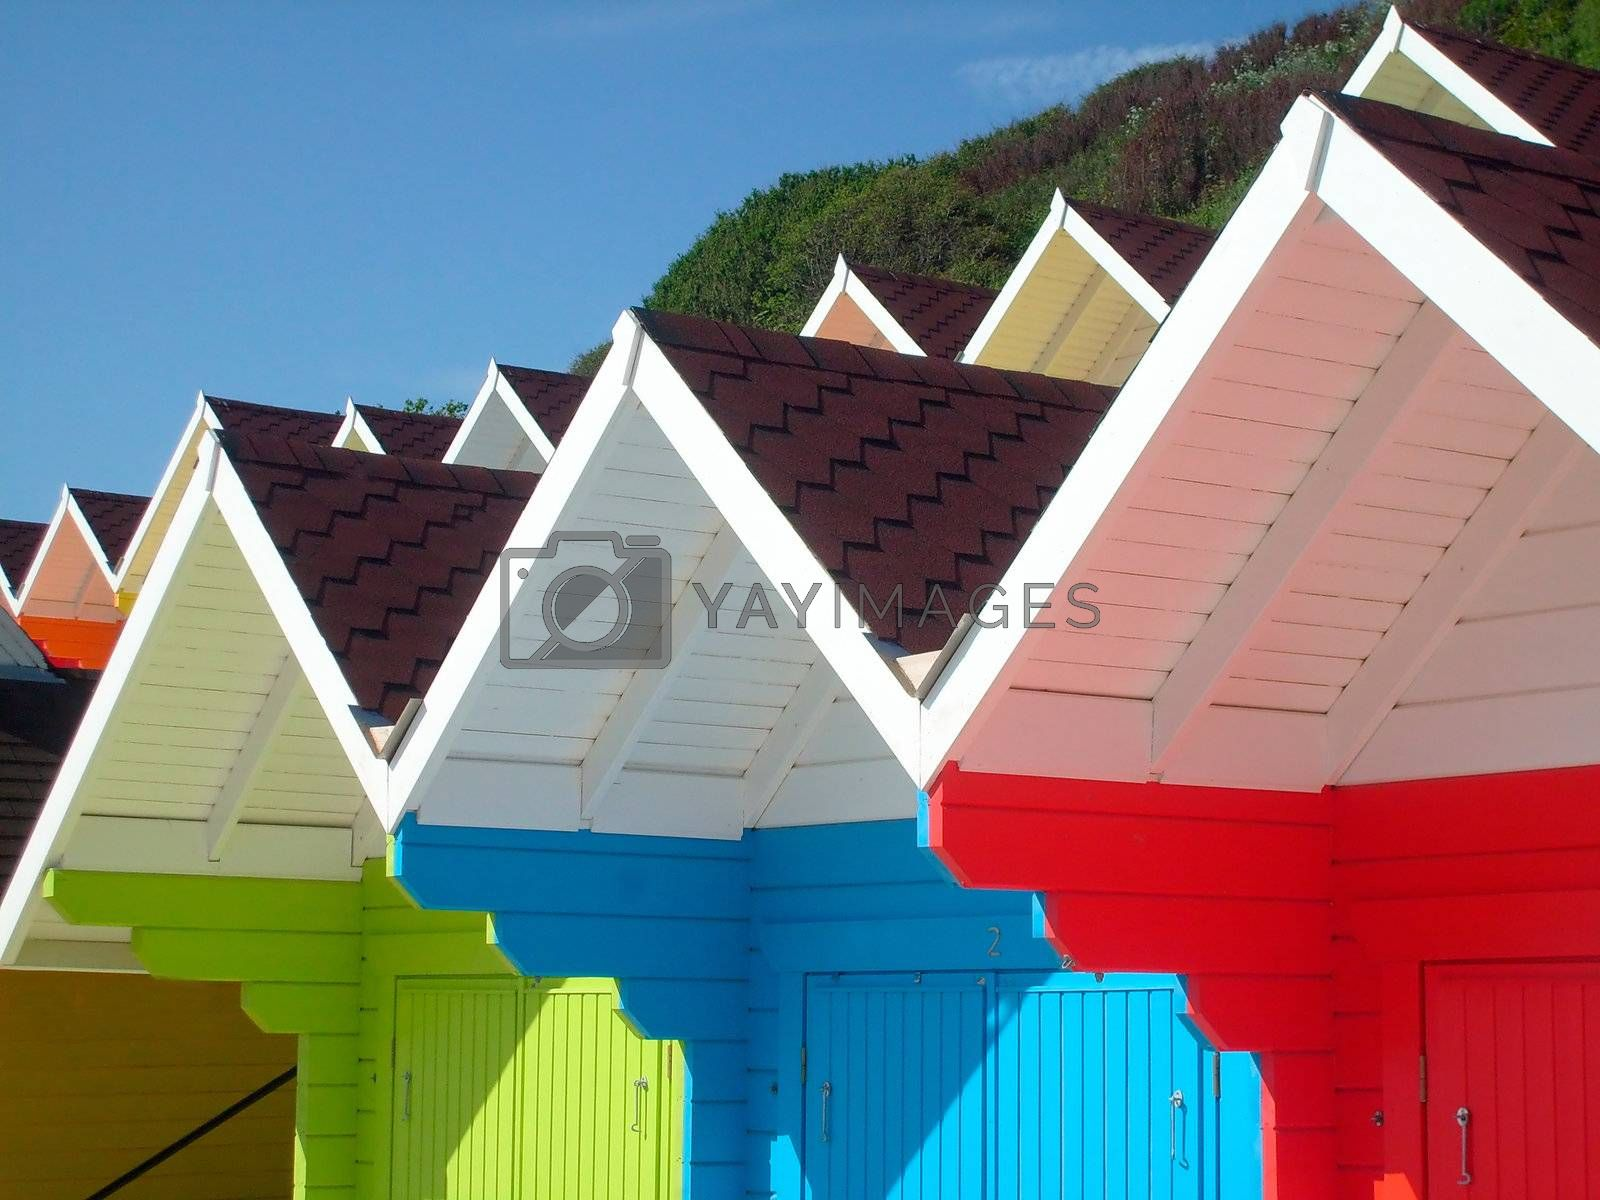 Colorful seaside beach chalets by speedfighter